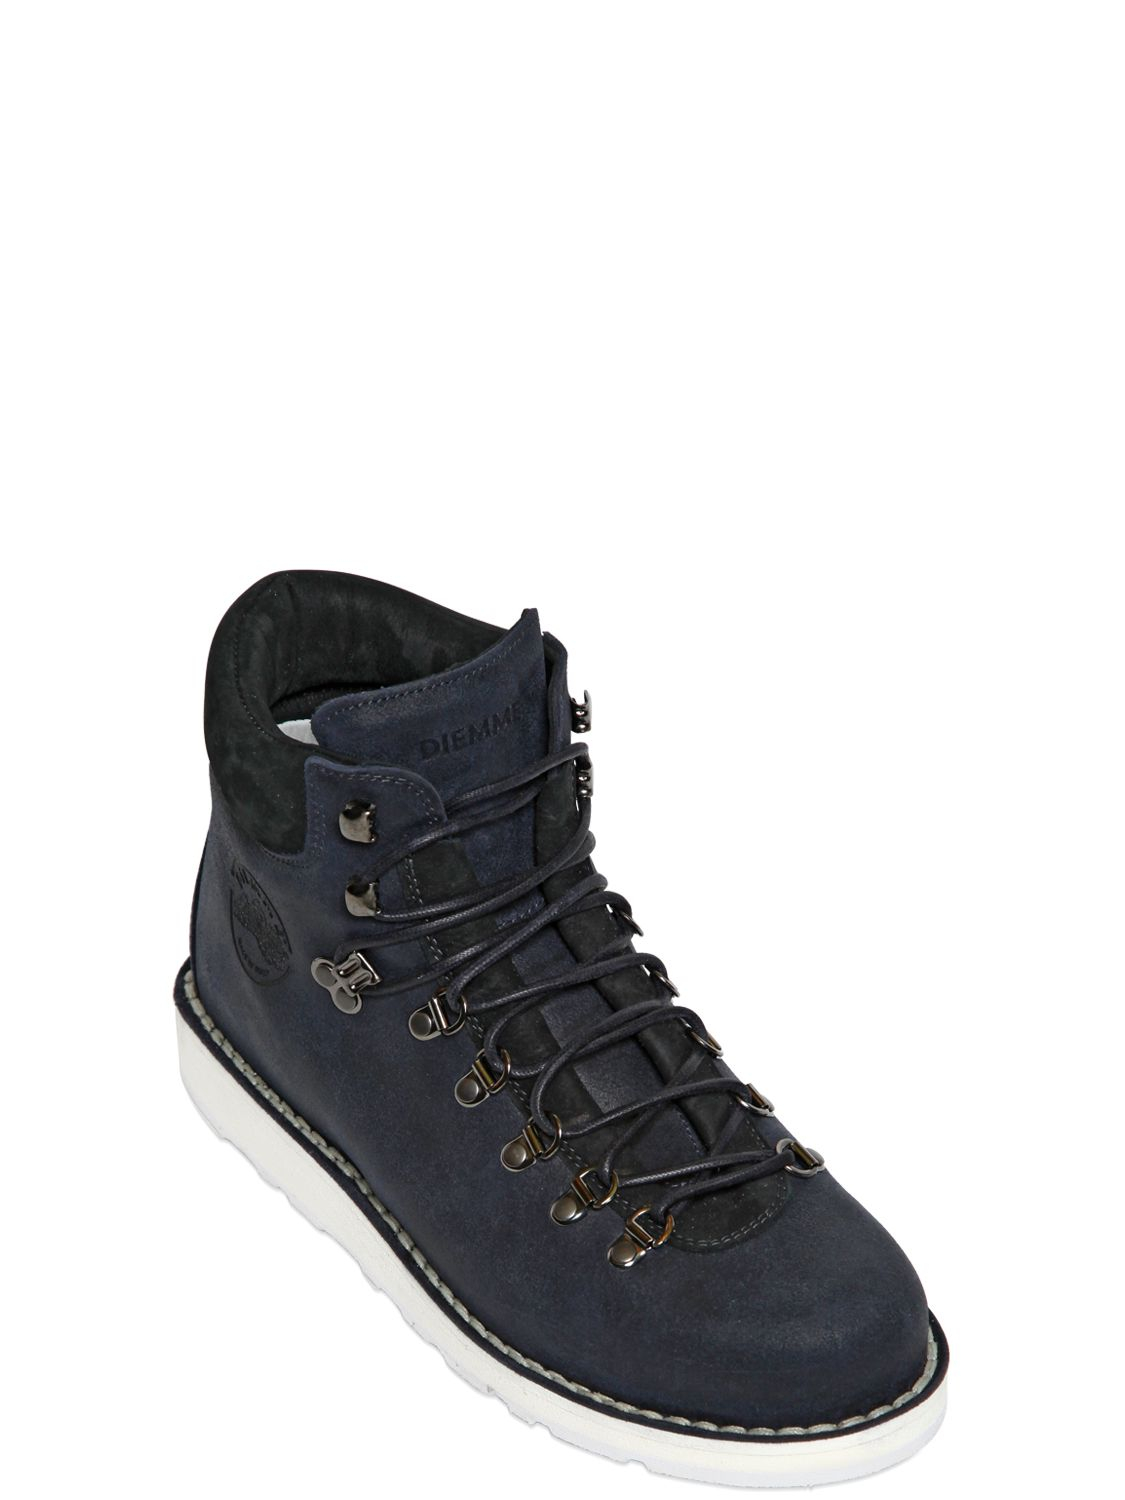 diemme roccia leather walking boots in blue for lyst